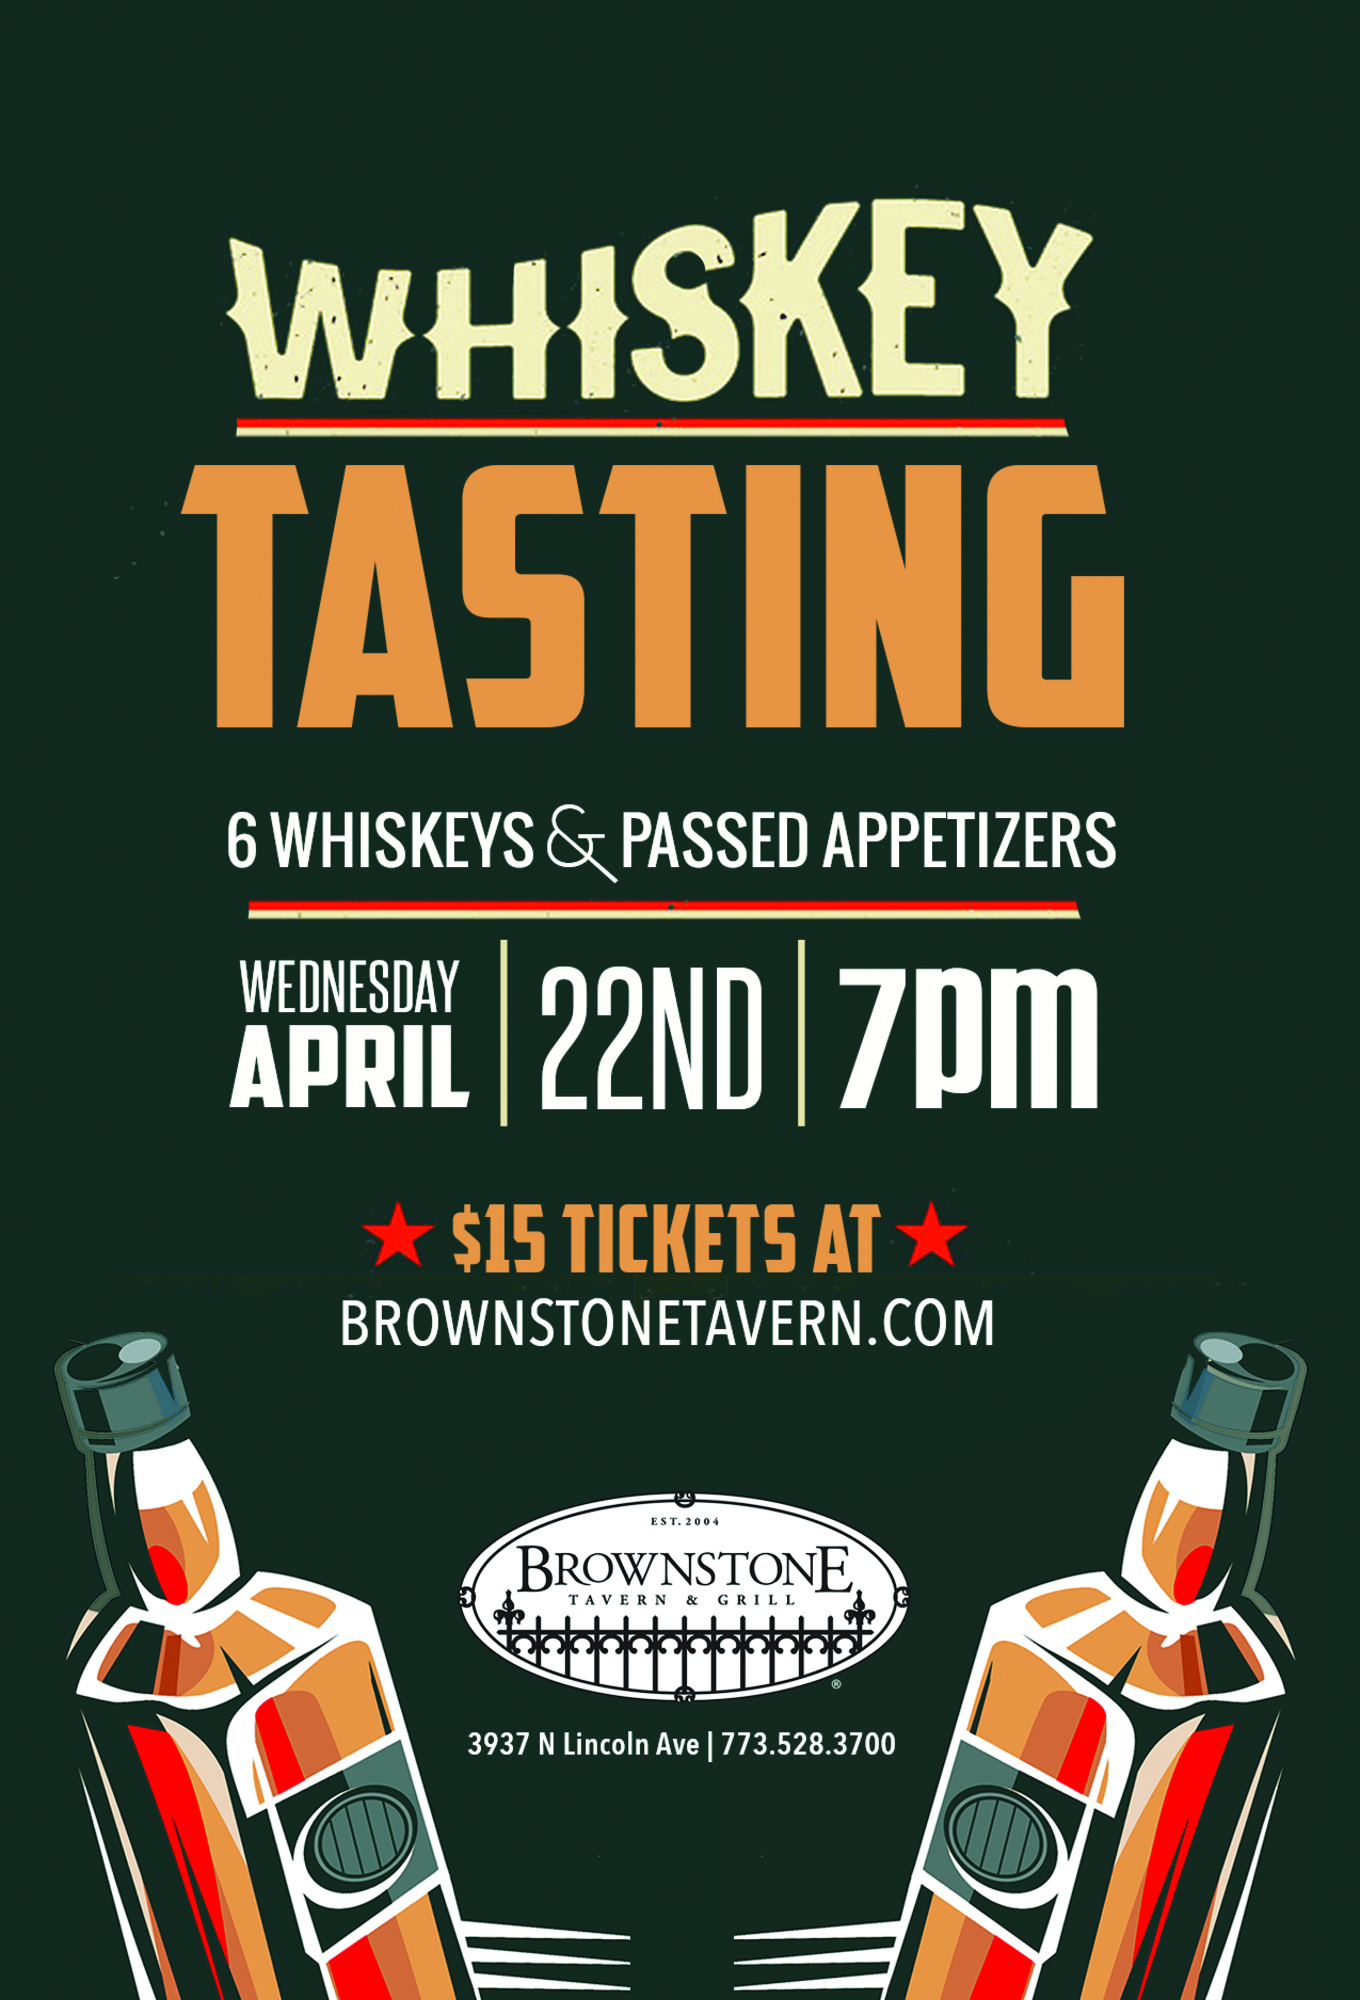 Whiskey Tasting at Brownstone Tickets Brownstone Chicago IL